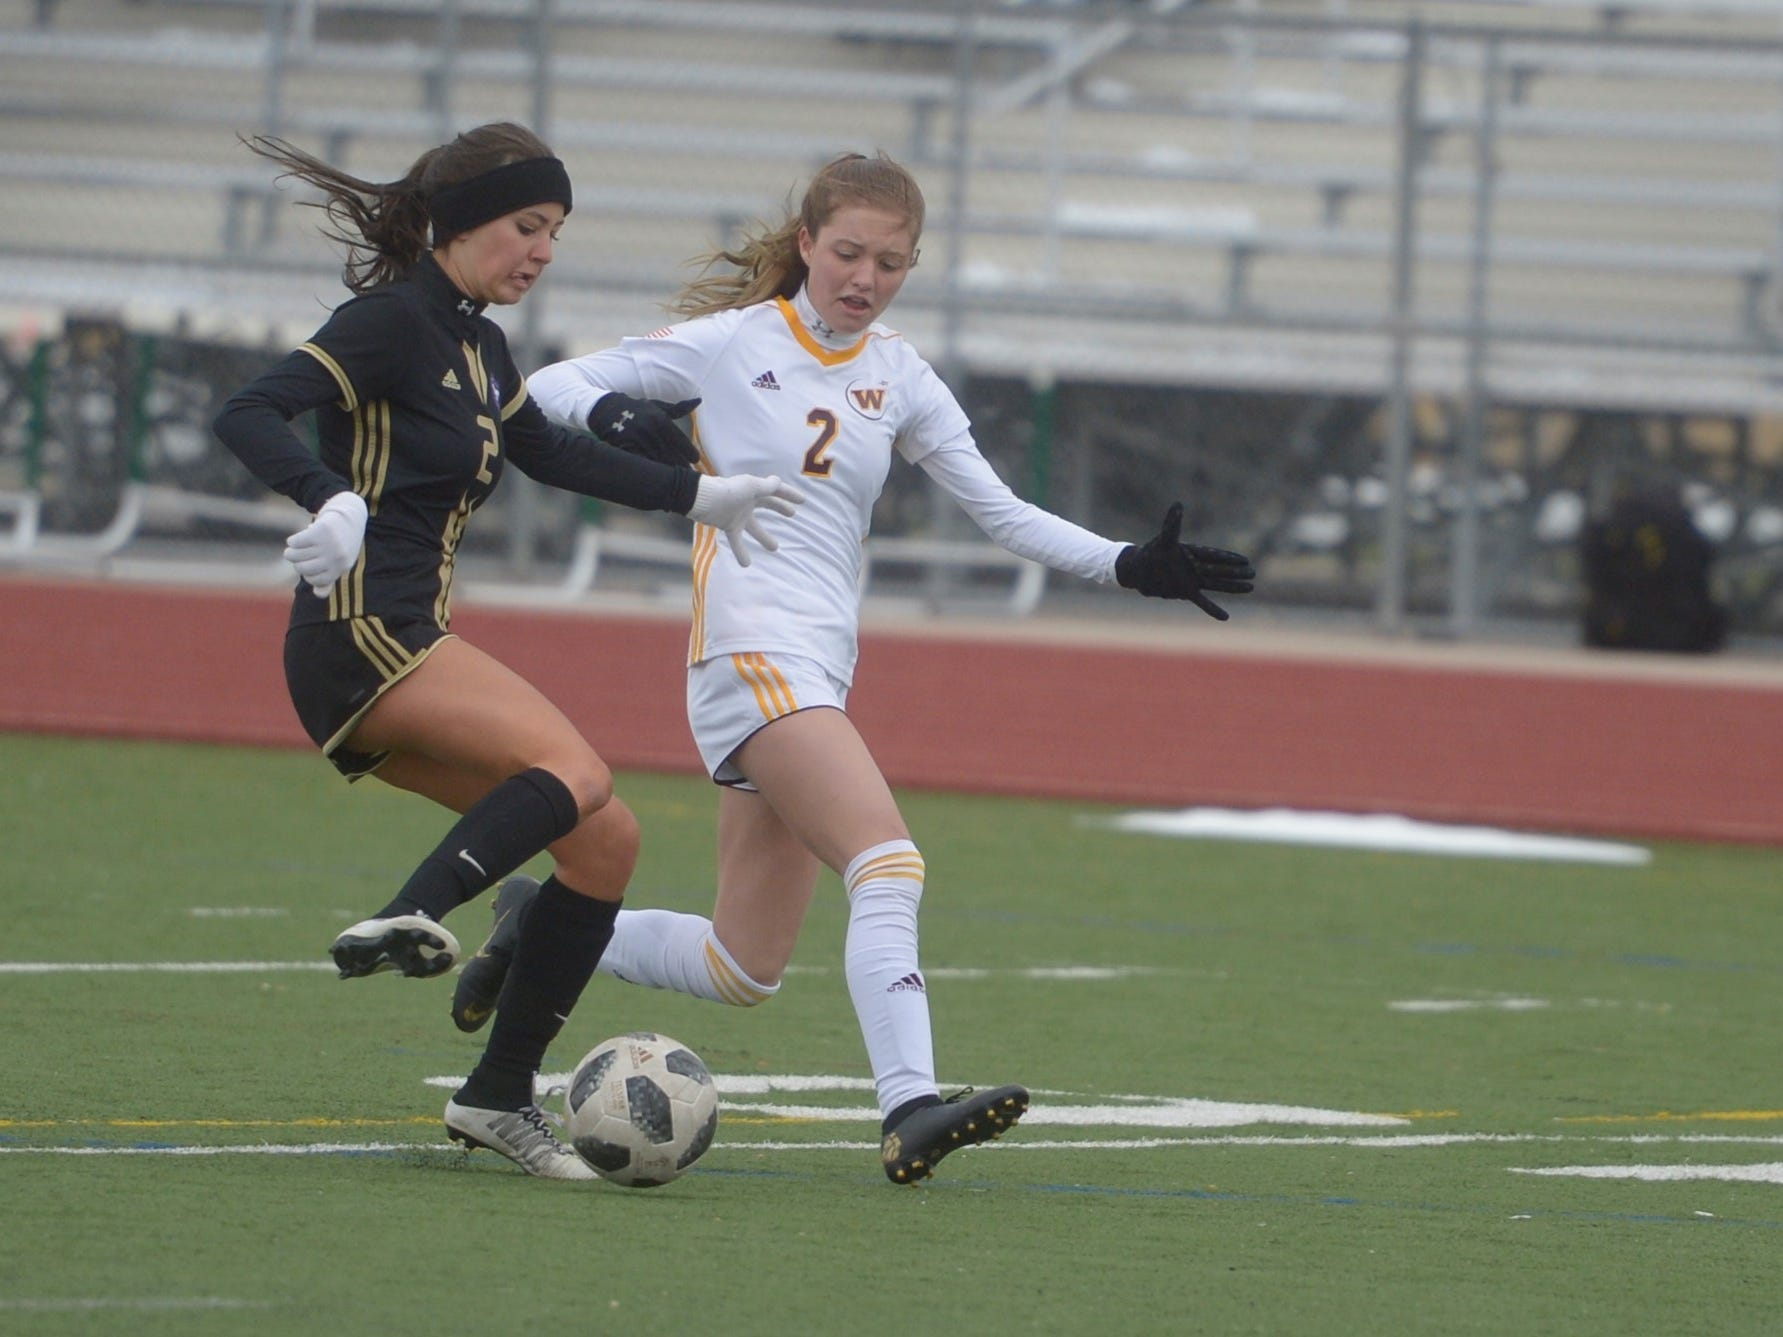 Fort Collins High School girls soccer player Annika Lamb, left, defends Windsor's Alexa Kopren in a game Saturday, April 13, 2019 at Fossil Ridge. Windsor won 3-0.